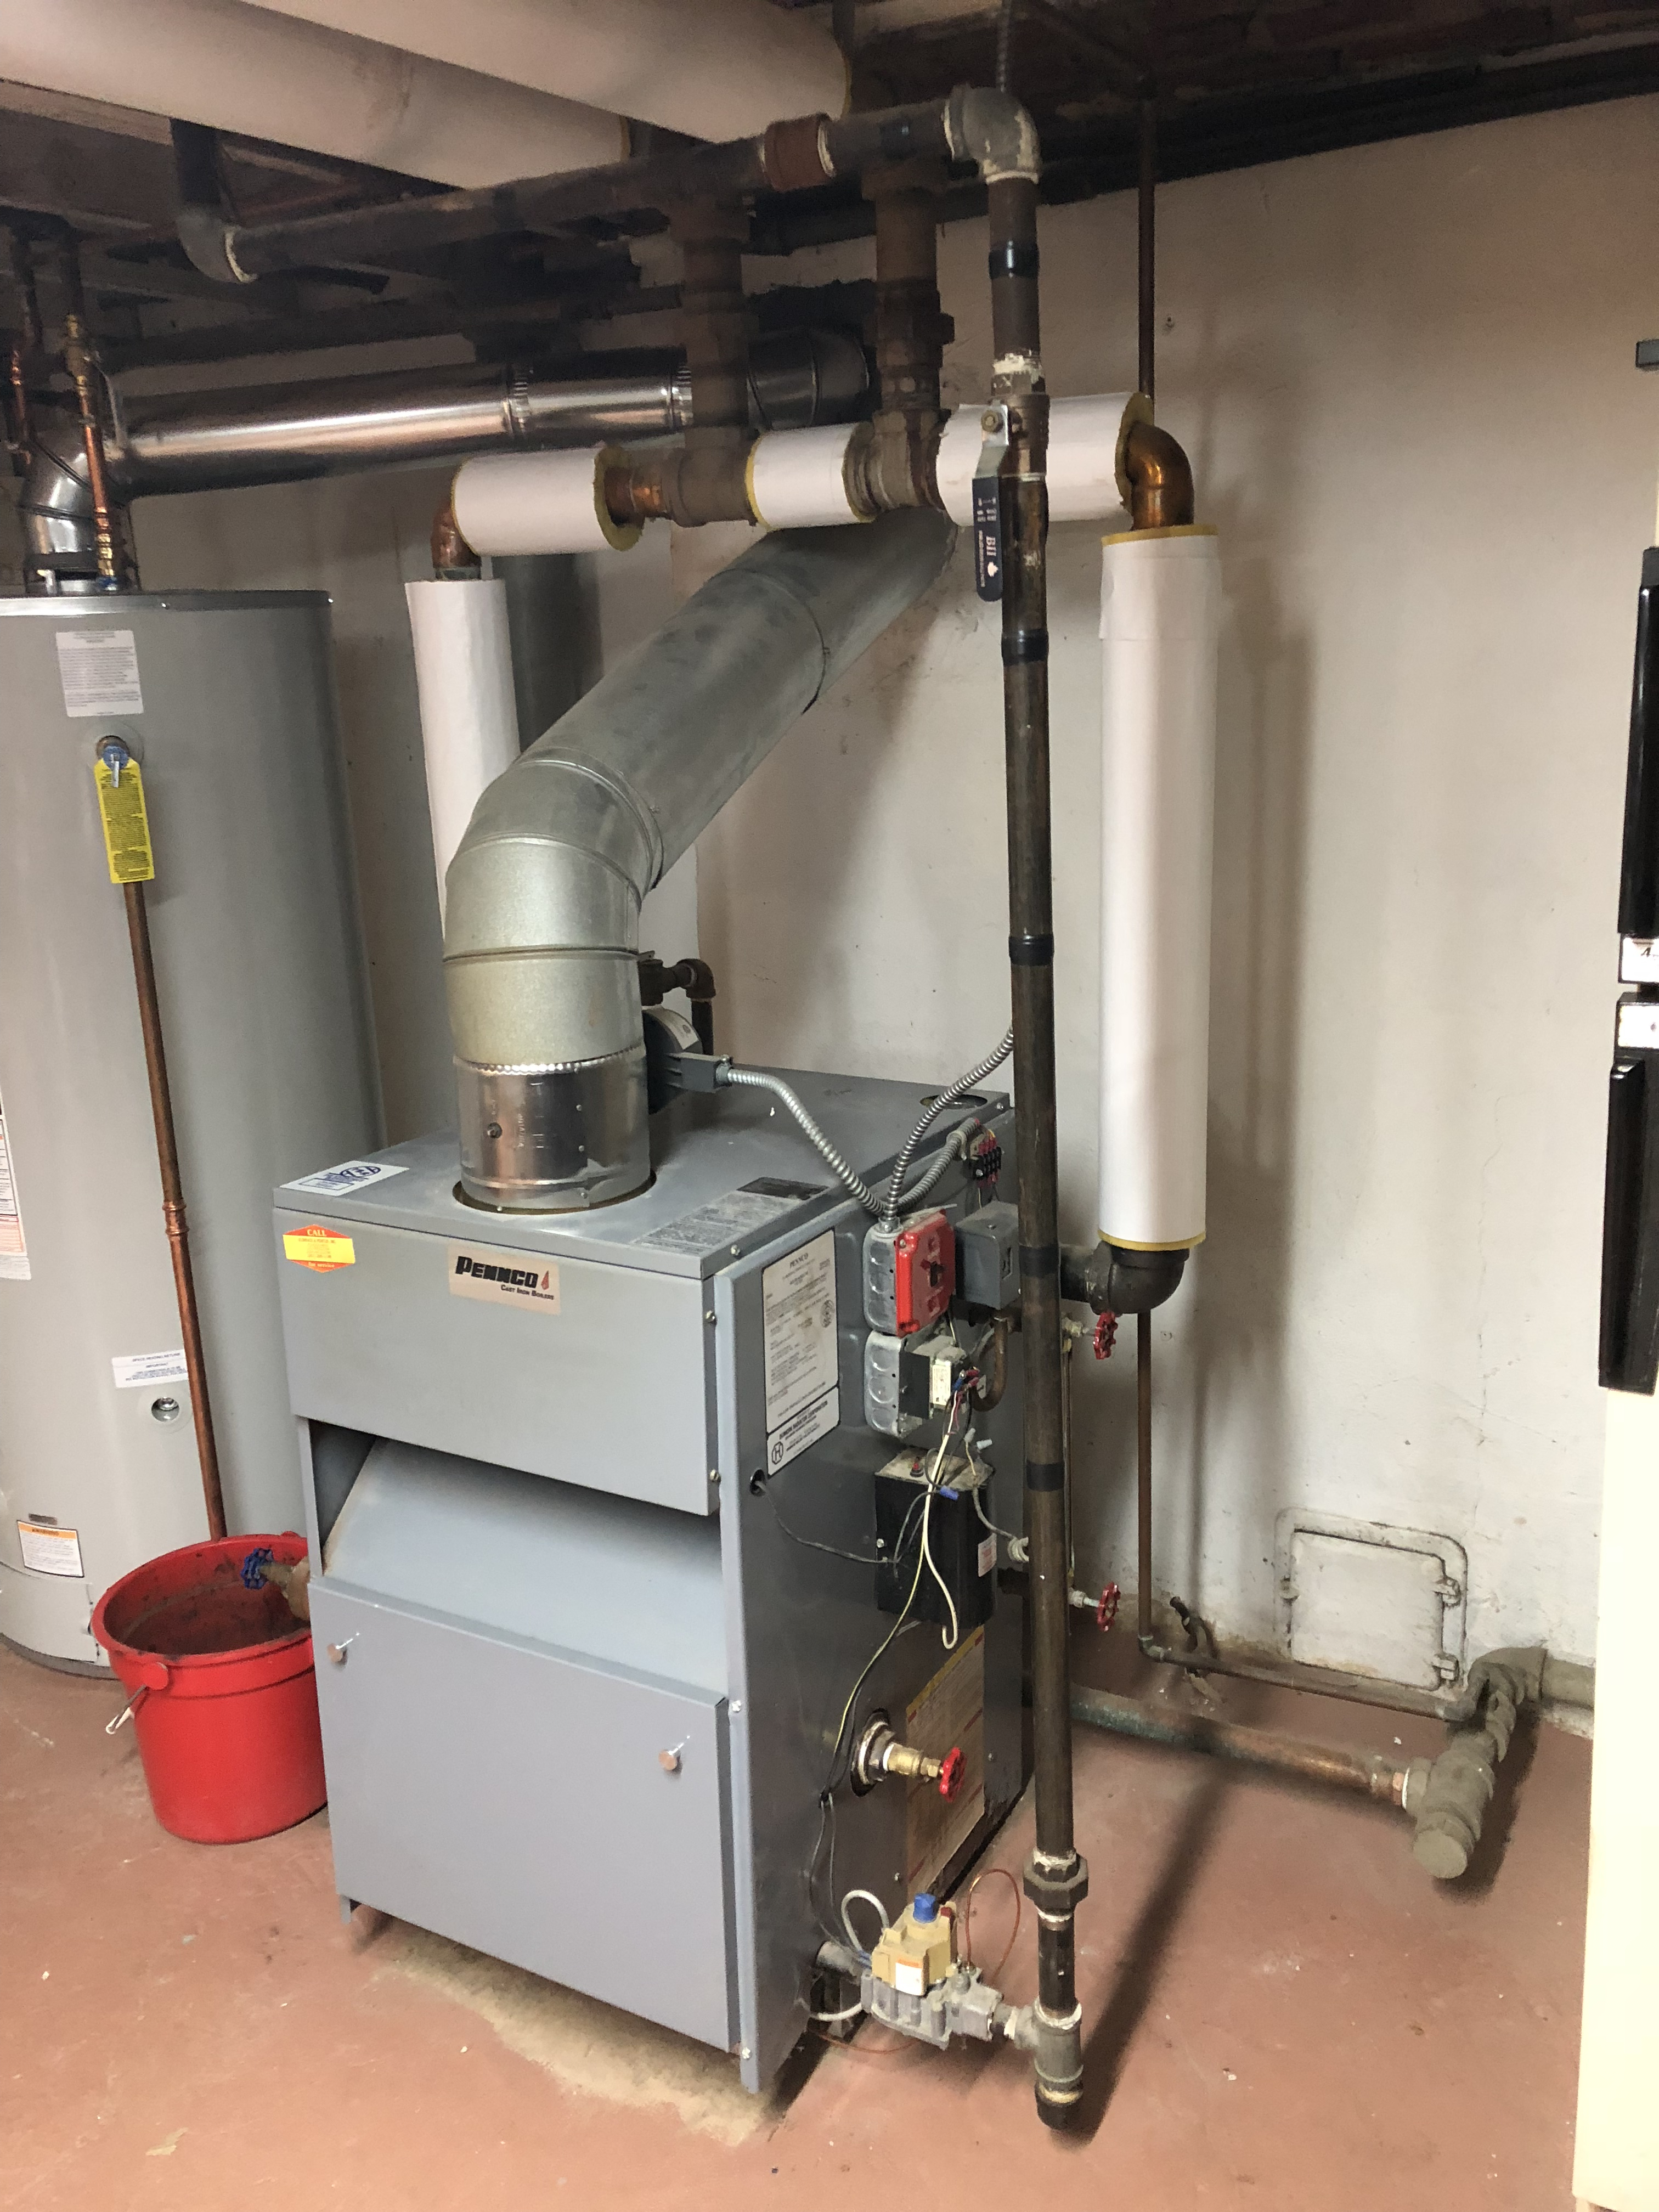 conditioning boiler waterfeeder mechanical air specialists in caleffi water pilot hvac heating piping feeder